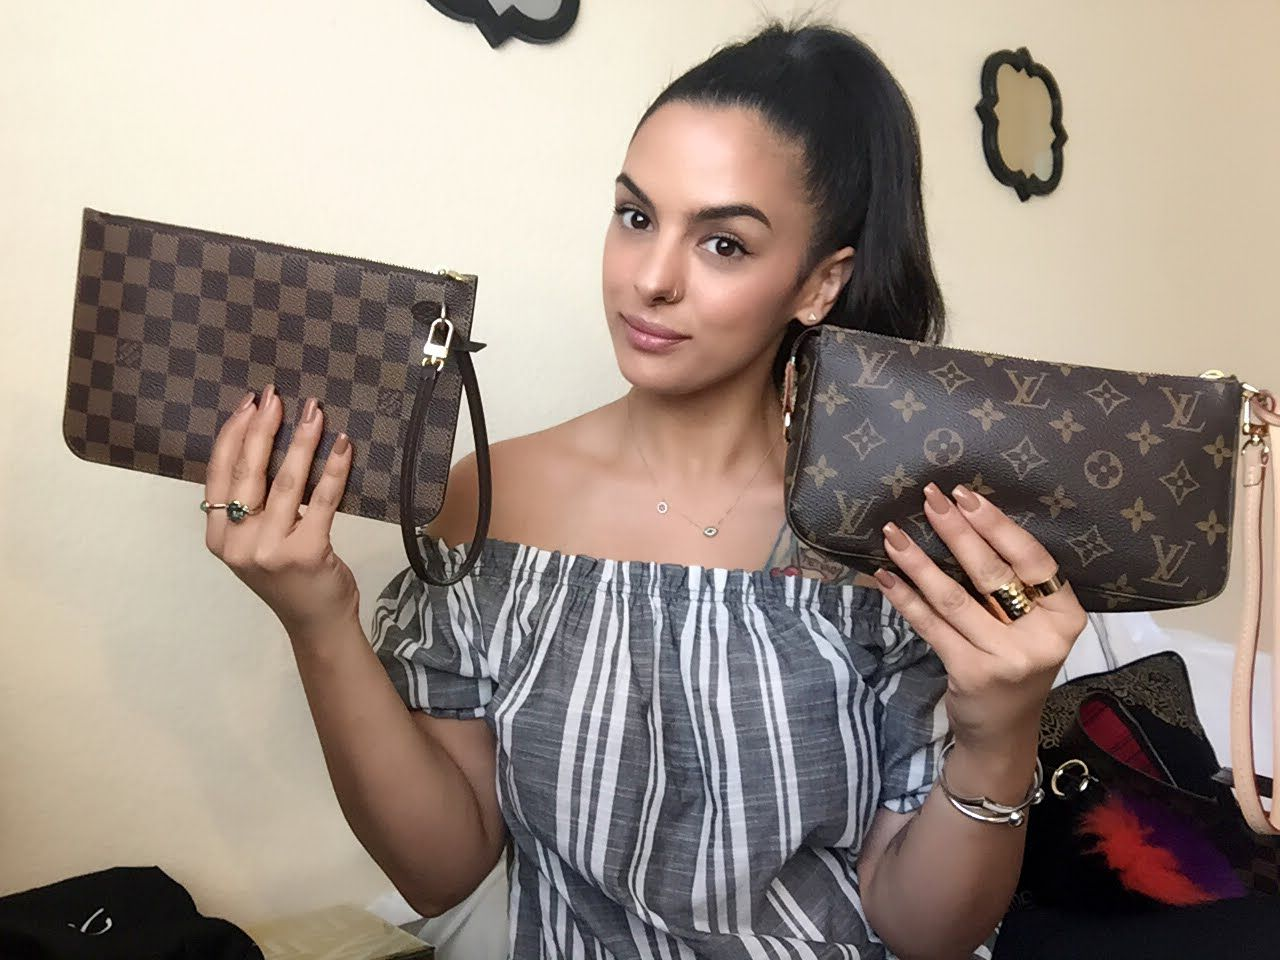 ad1696b10da0 Louis Vuitton Pochette Accessory NM Vs Neverfull Pouch-what fits uses -  YouTube